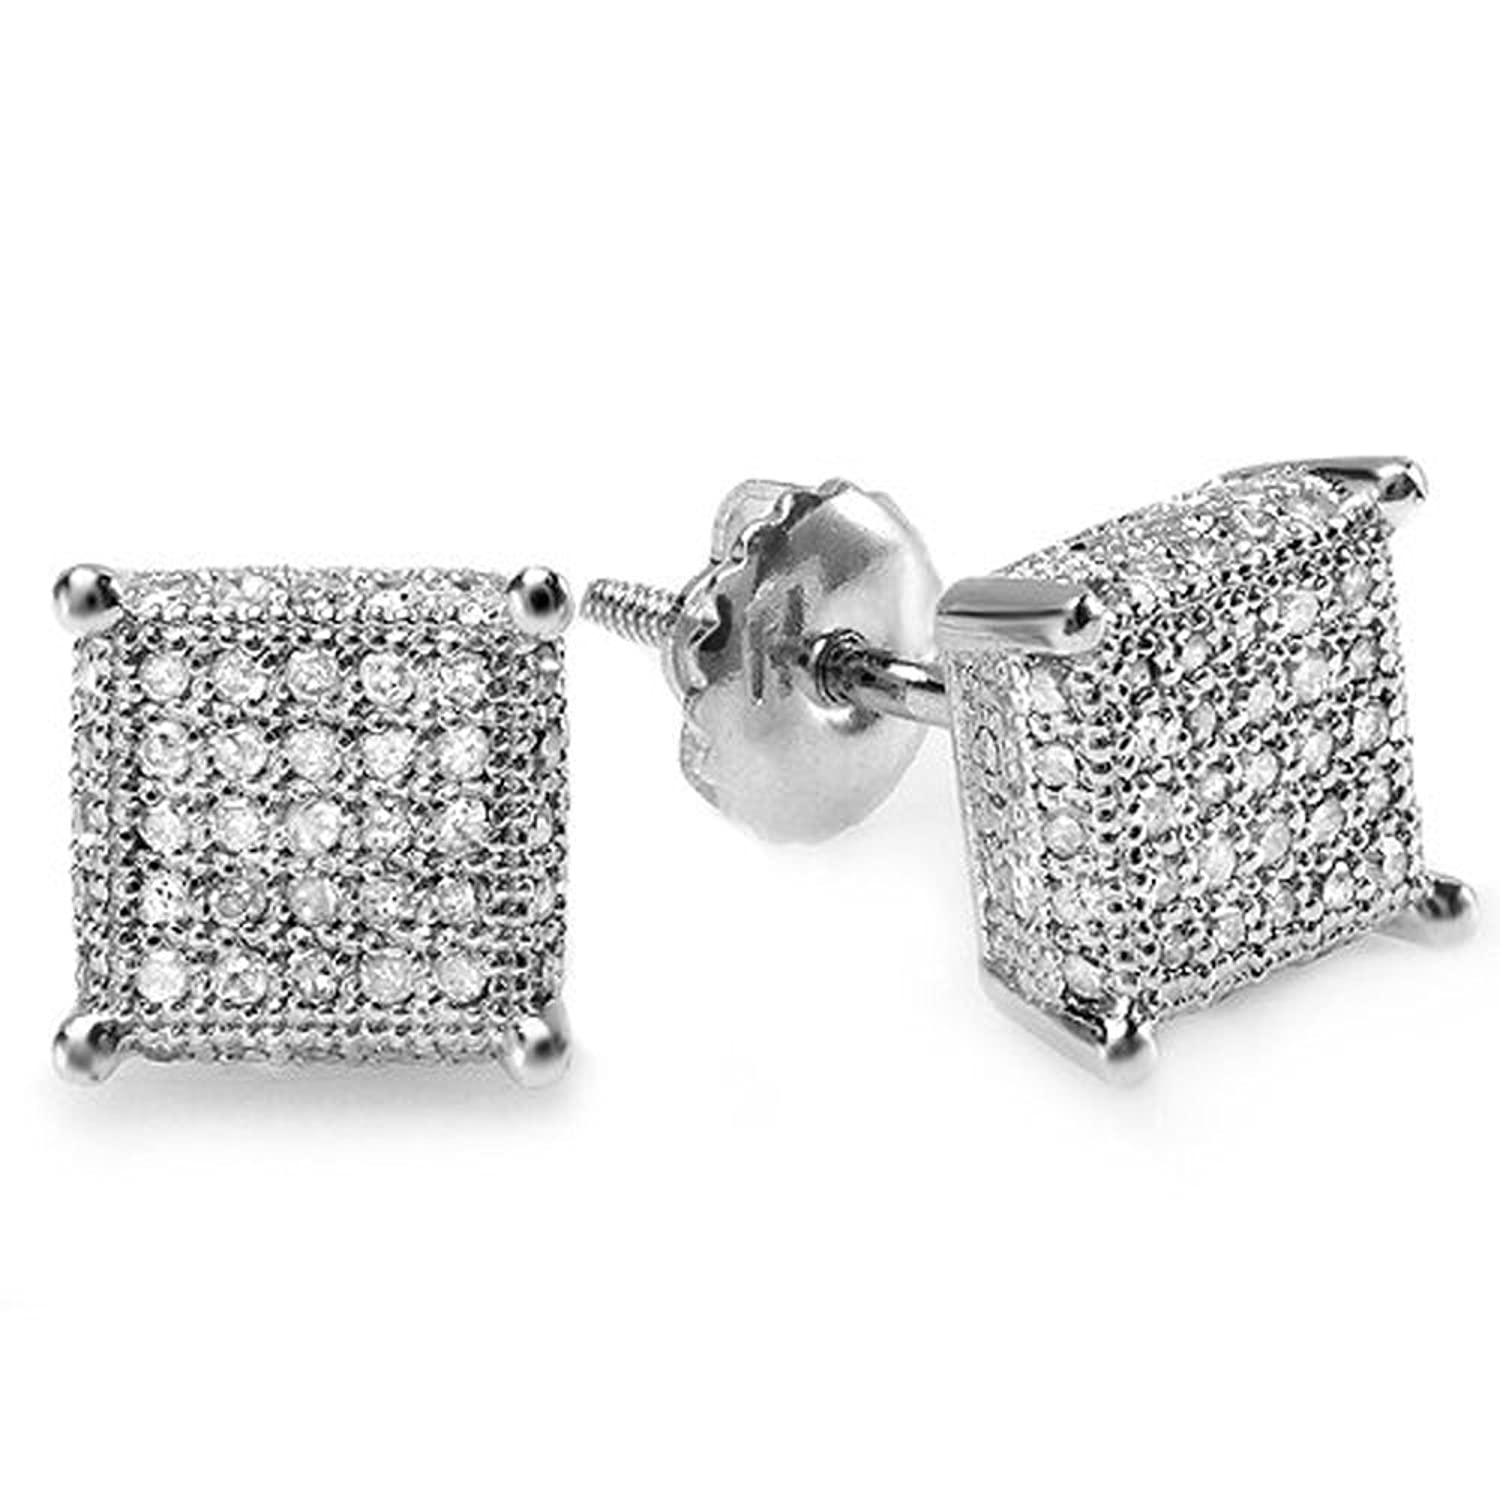 Black And White Diamond Earrings For Men Just Try To Be Better